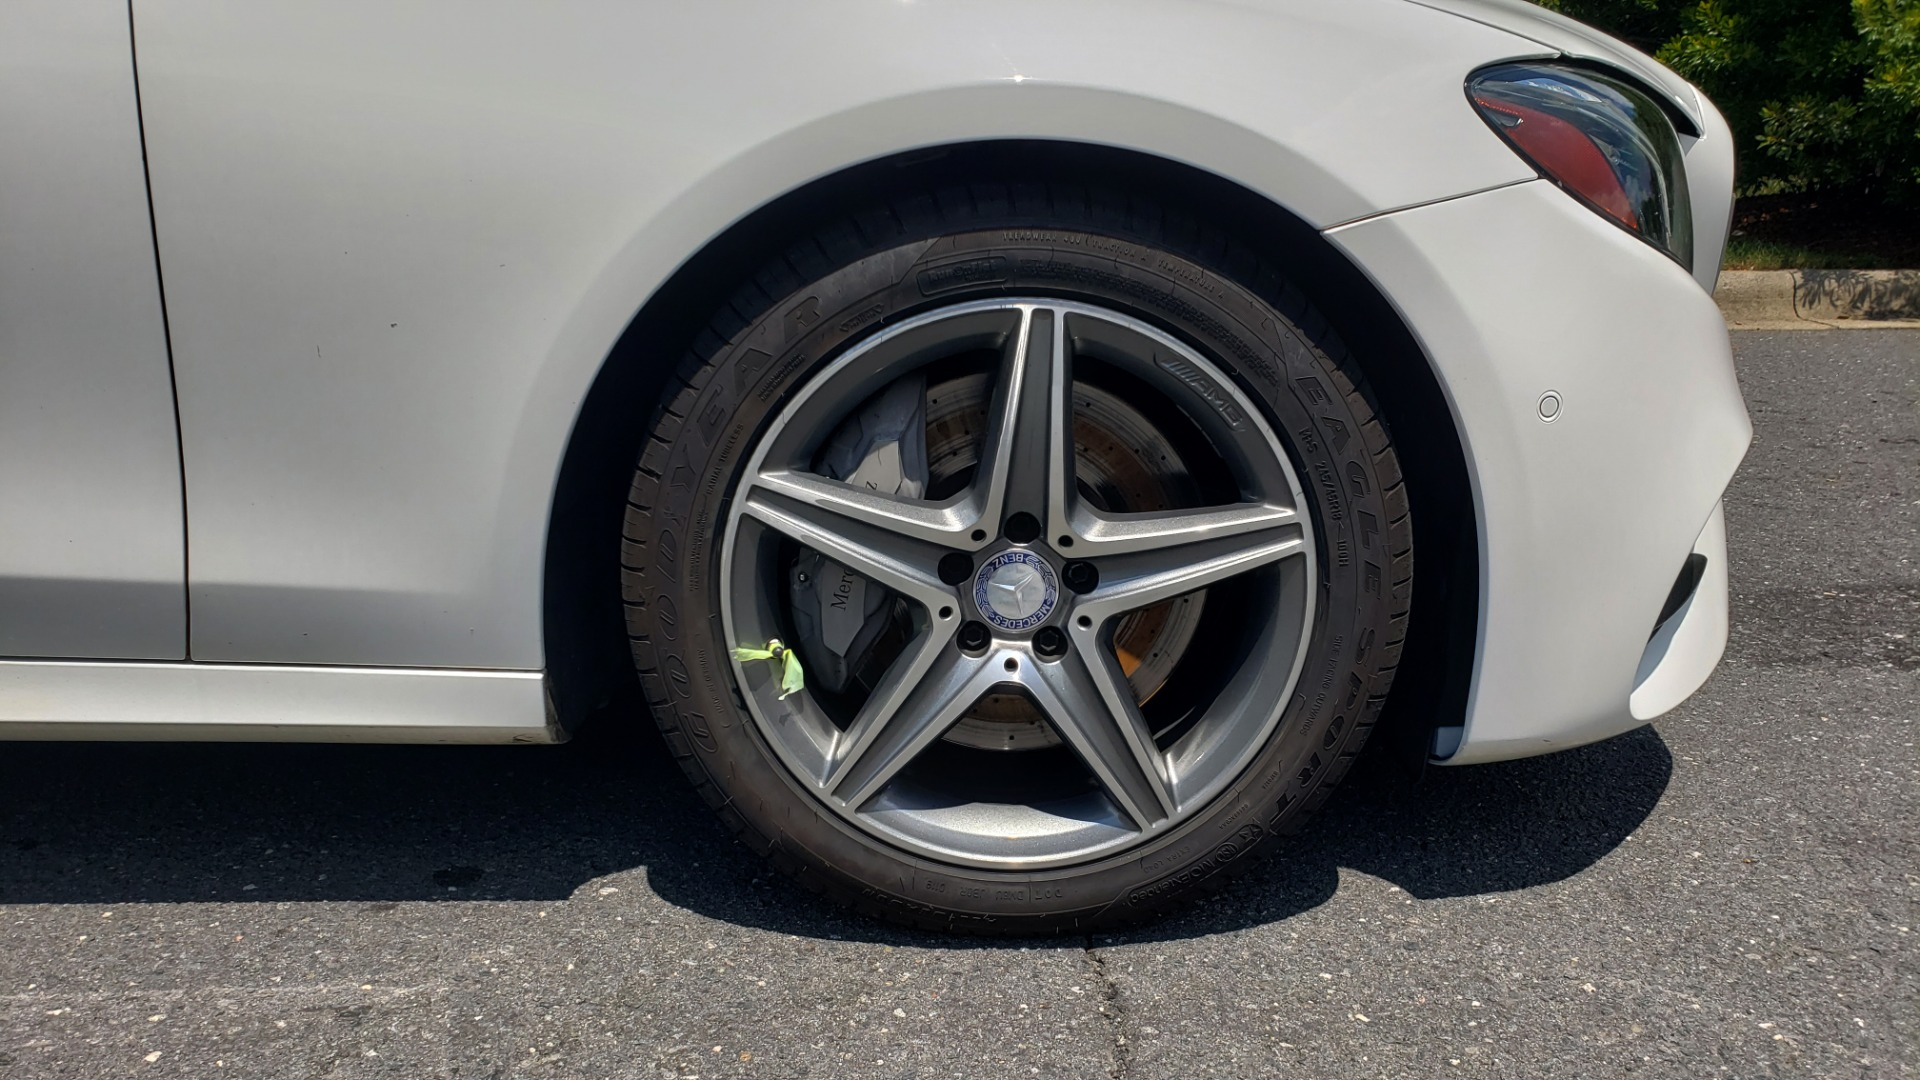 Used 2017 Mercedes-Benz E-CLASS E 300 PREMIUM / SPORT / NAV / SUNROOF / HTD STS / BSM / REARVIEW for sale $27,995 at Formula Imports in Charlotte NC 28227 79